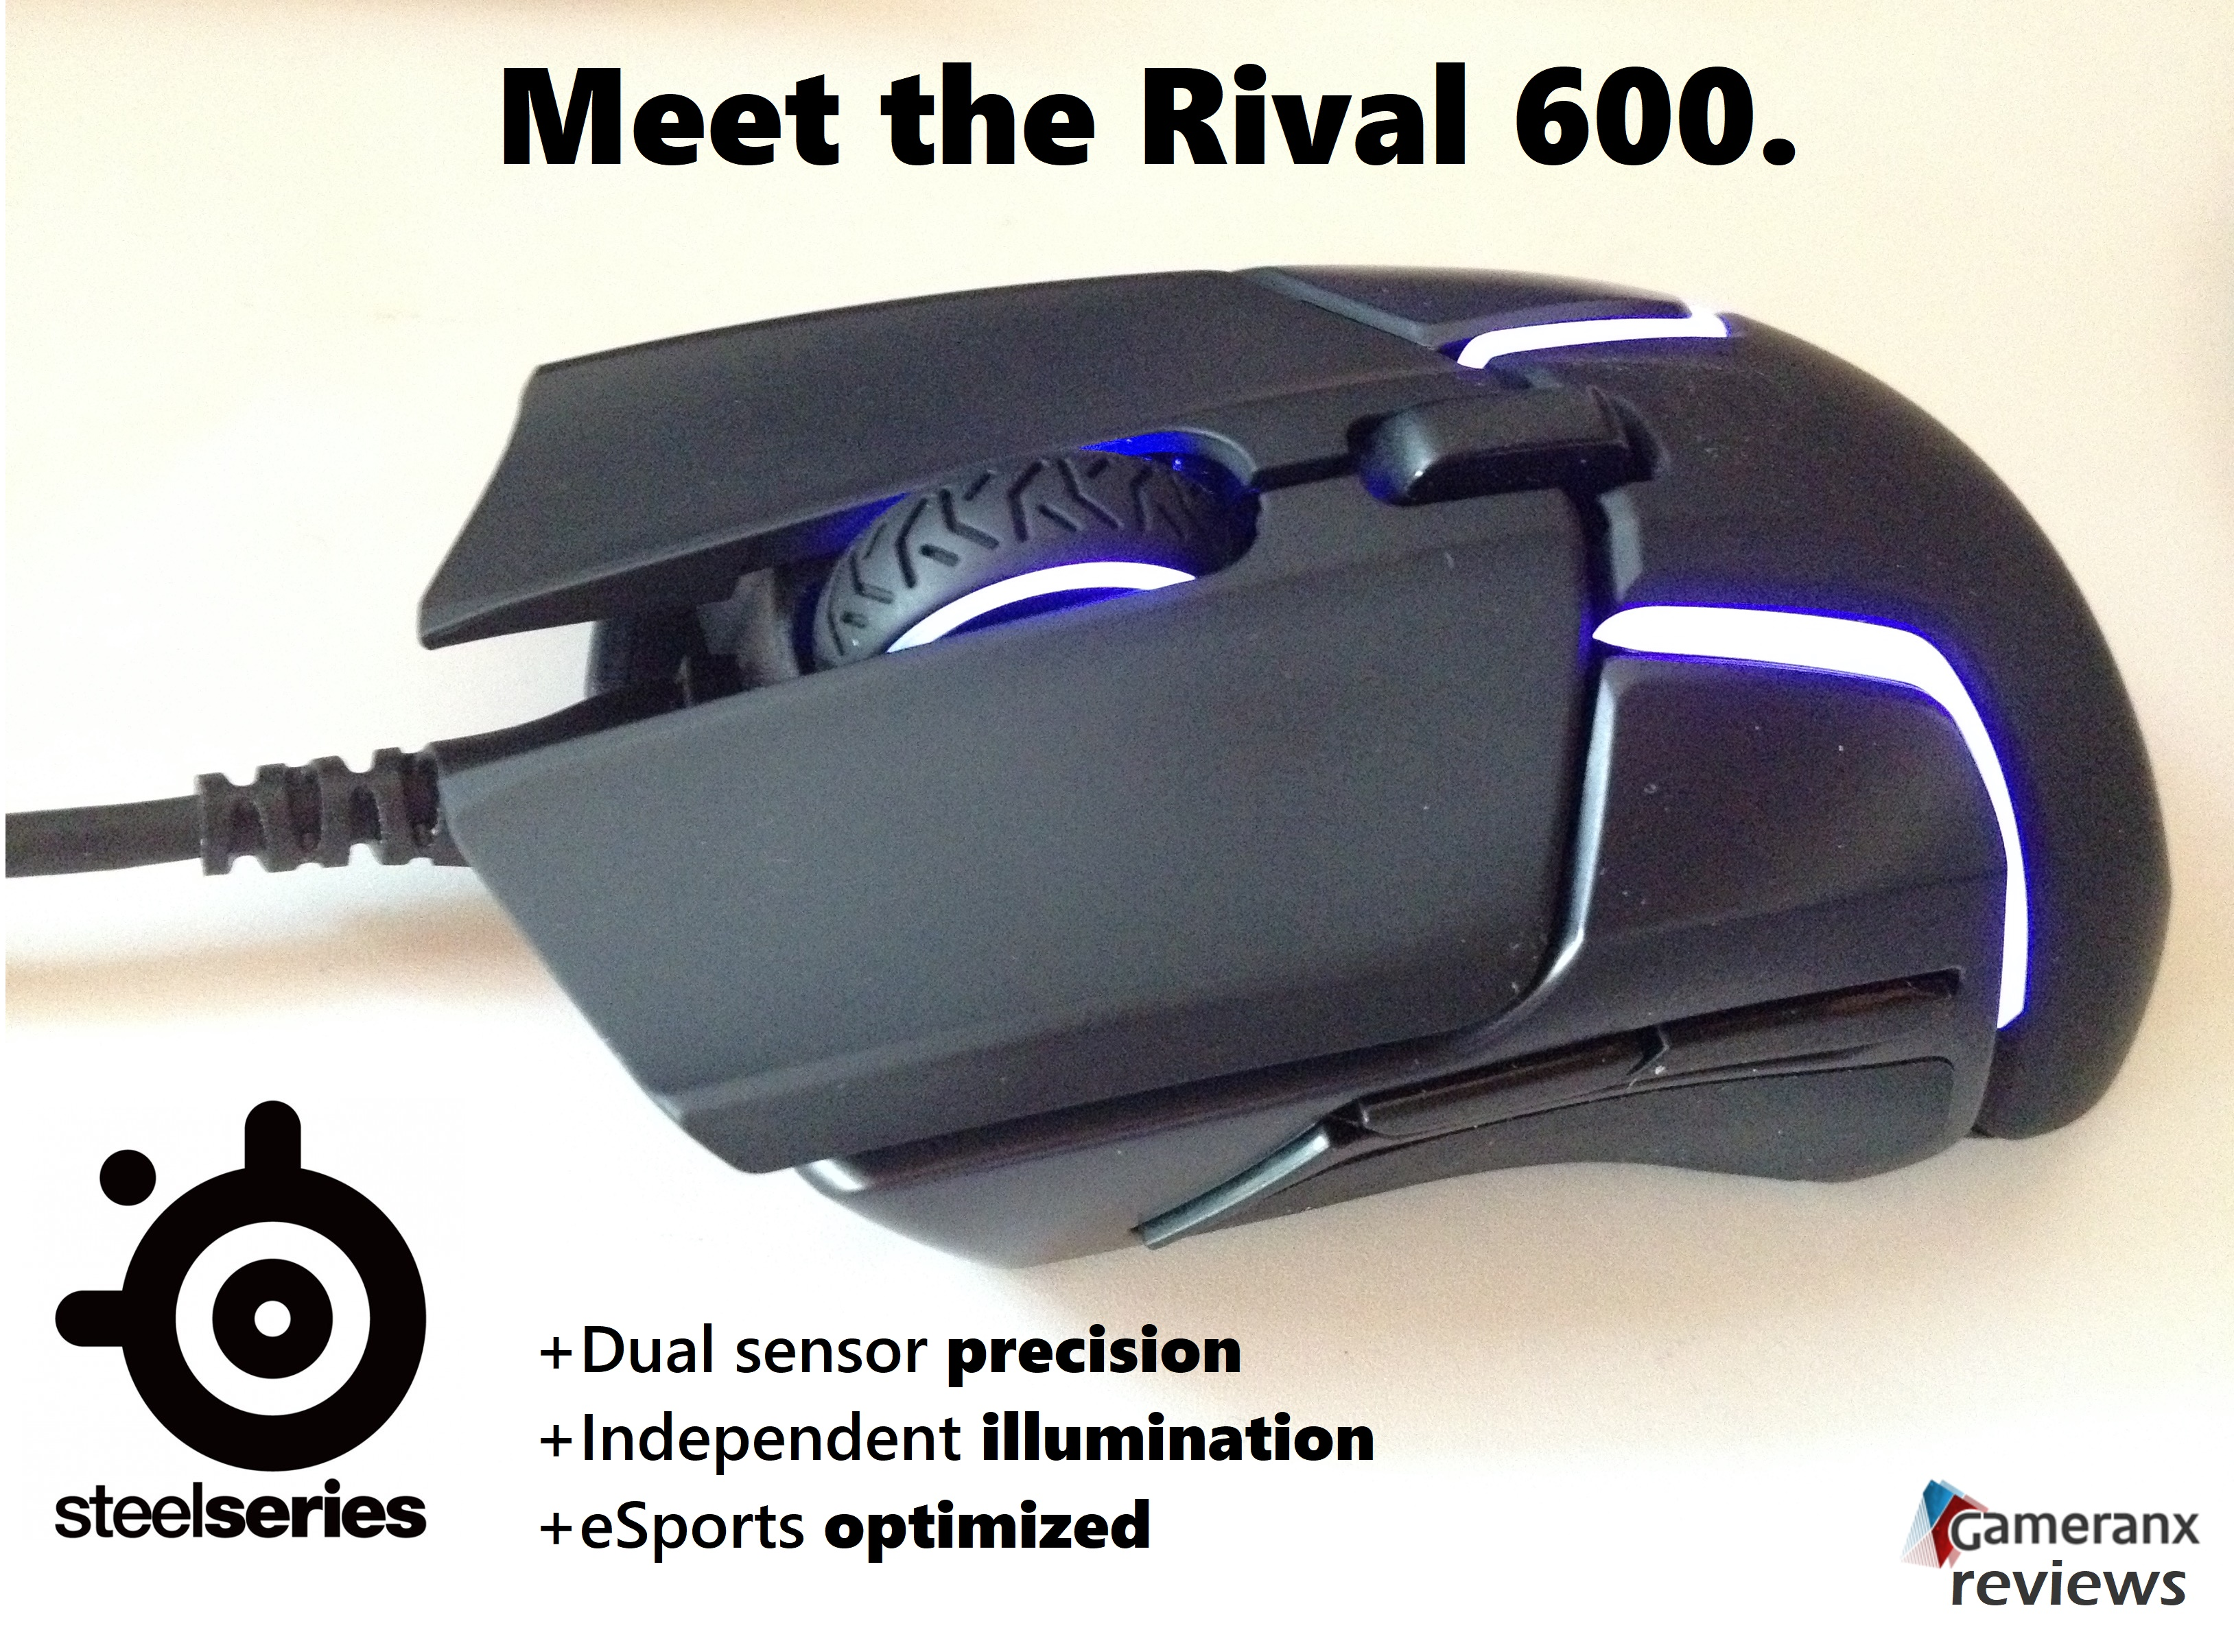 SteelSeries Rival 600 Gaming Mouse Review - Gameranx